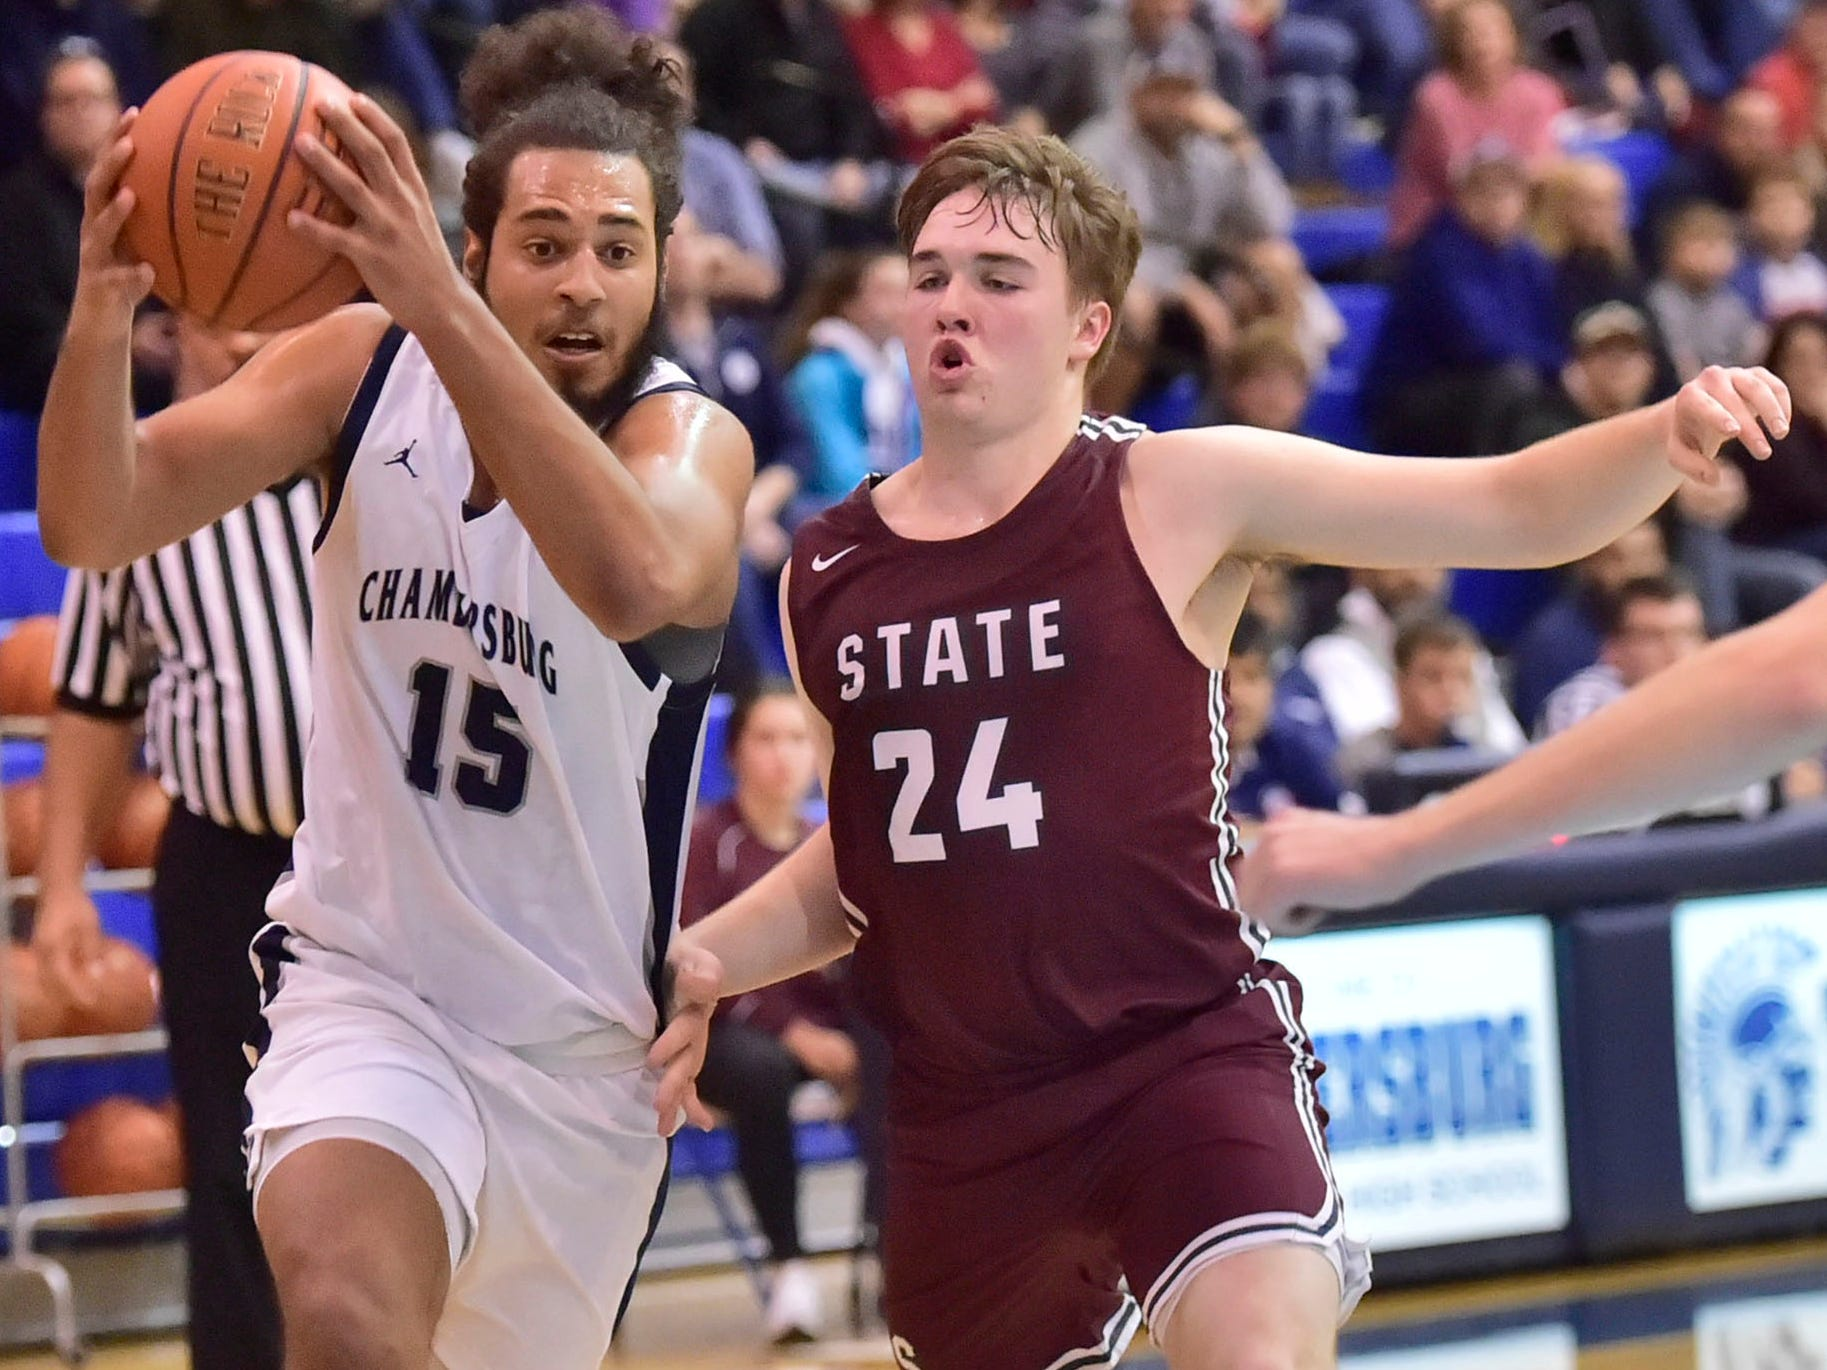 Chambersburg's Tyler Collier (15) drives to the basket against State College. Chambersburg dropped a buzzer beater 42-40 to State College during a District 3 basketball, Friday, Dec. 14, 2018.